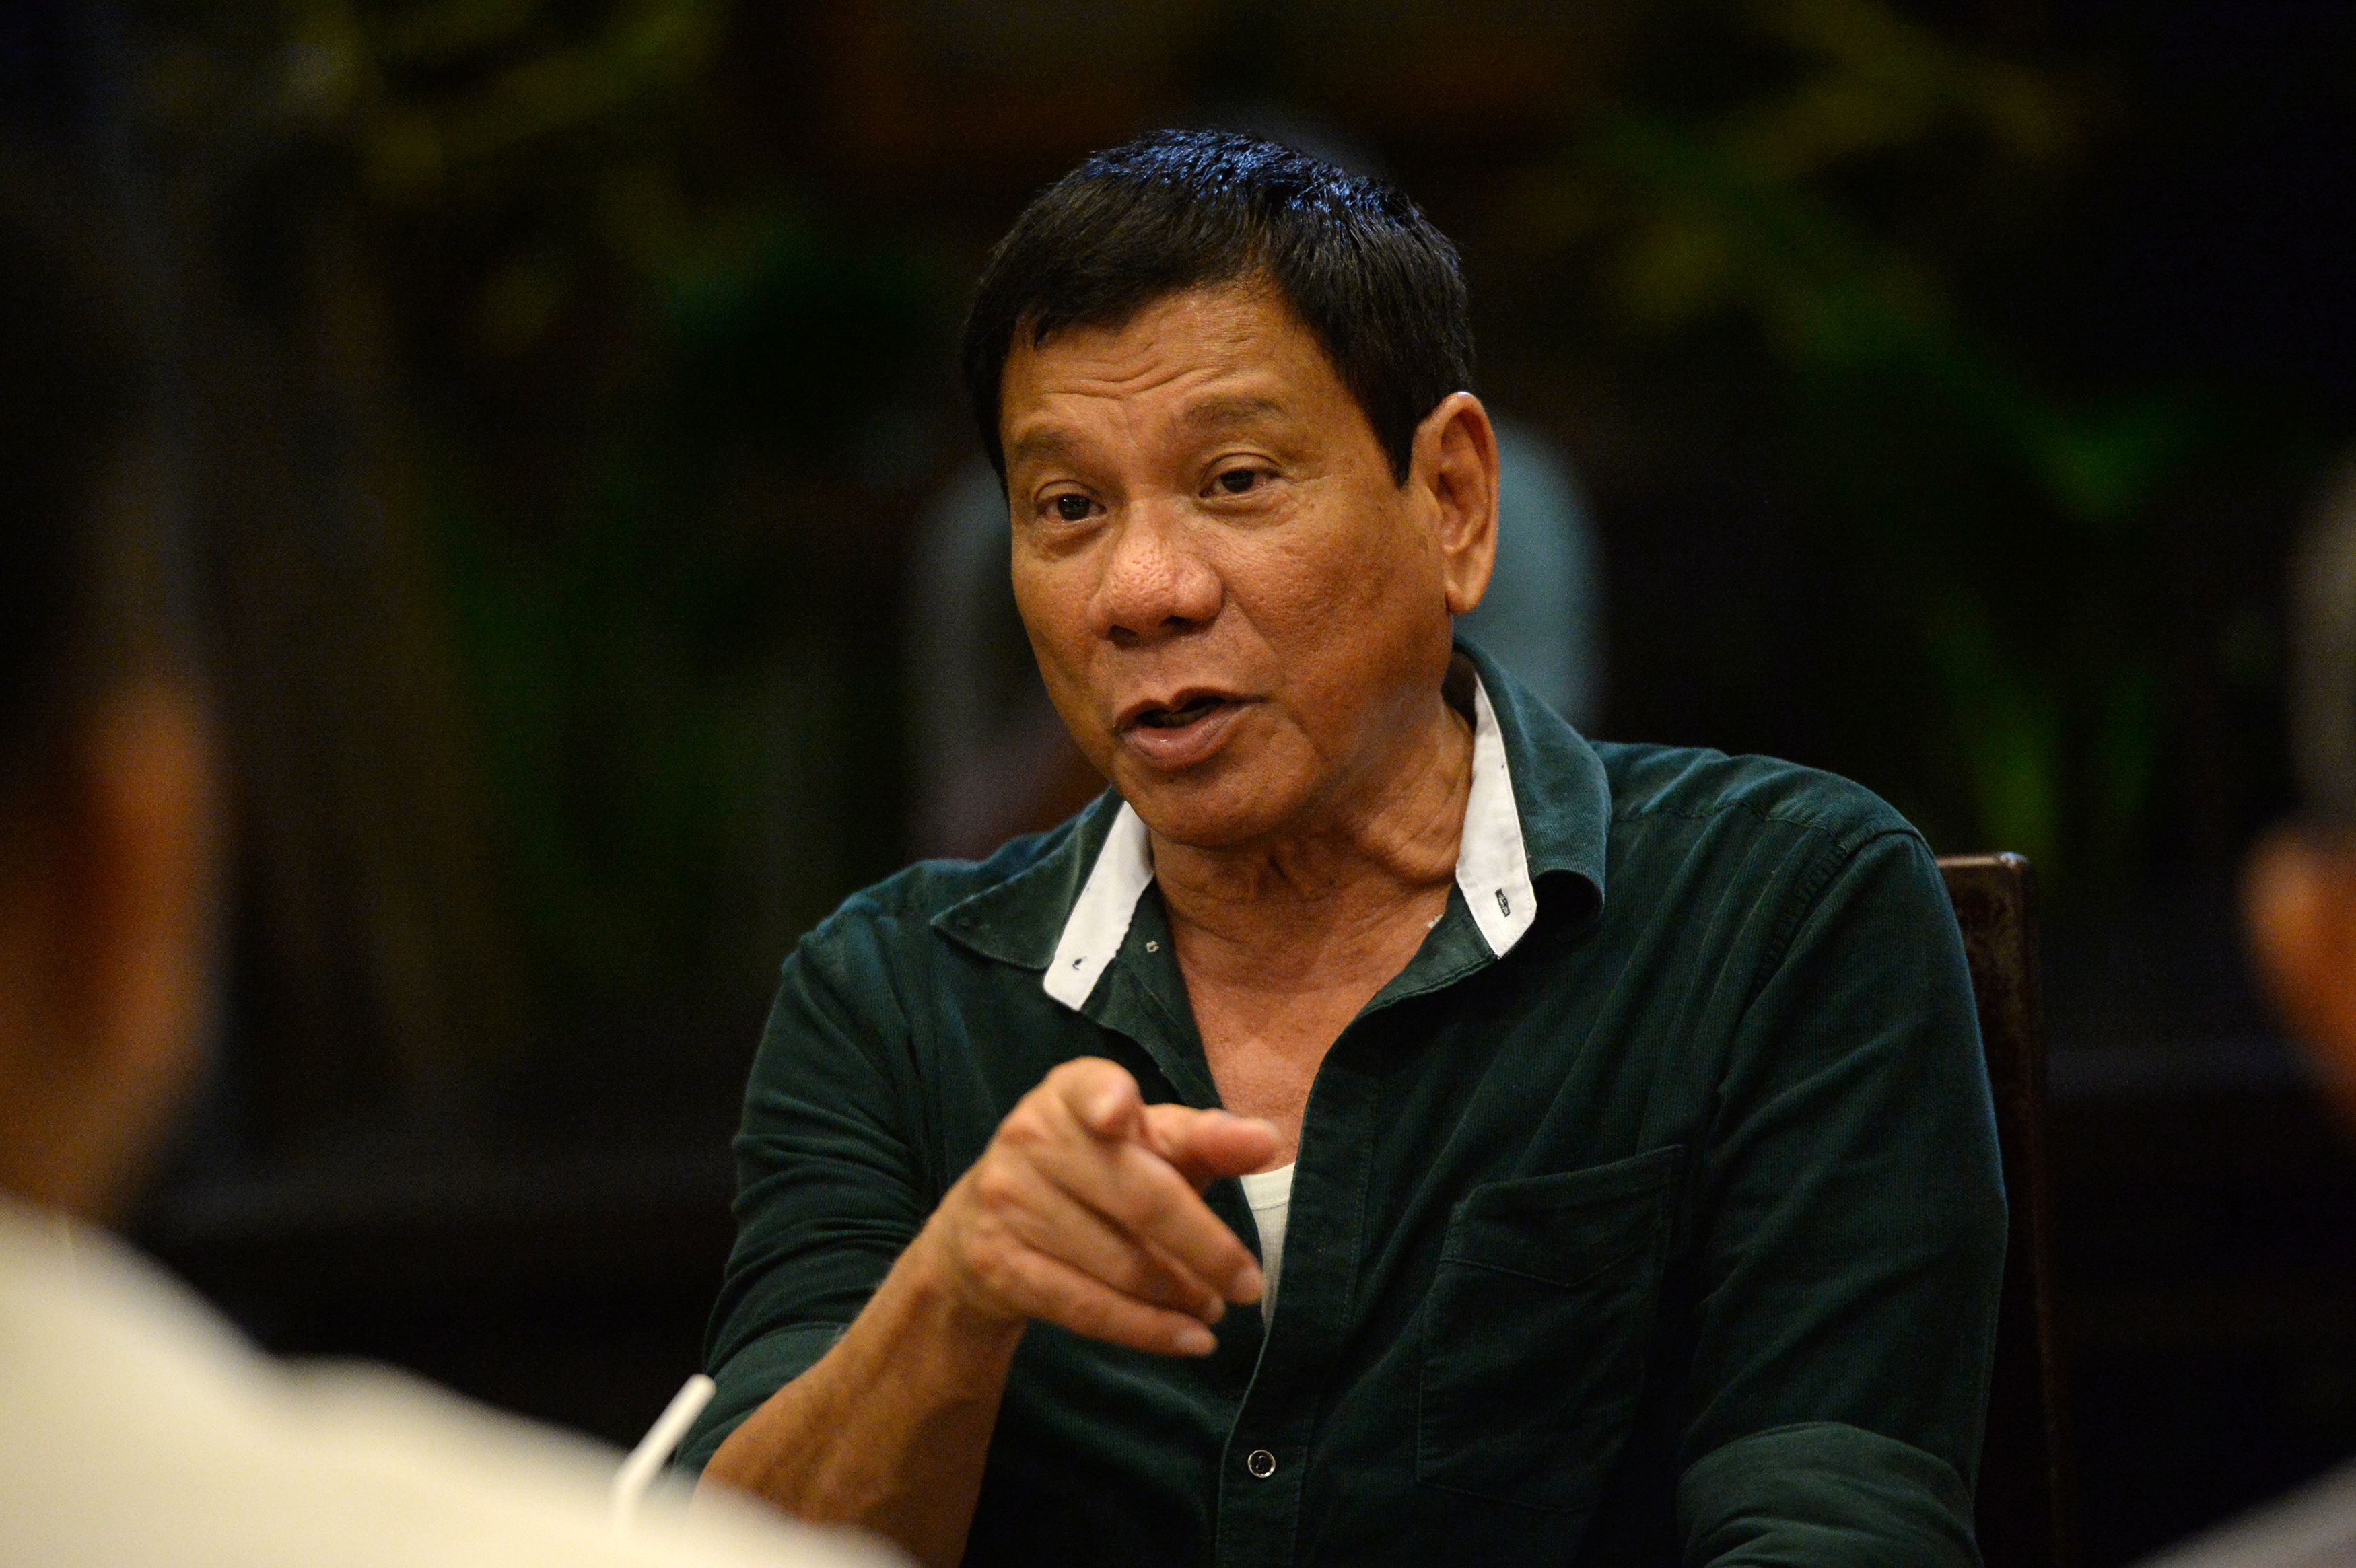 The Philippine President-elect Rodrigo Duterte during a meeting at a hotel in Davao City, in the Philippines' southern island of Mindanao, on May 15, 2016